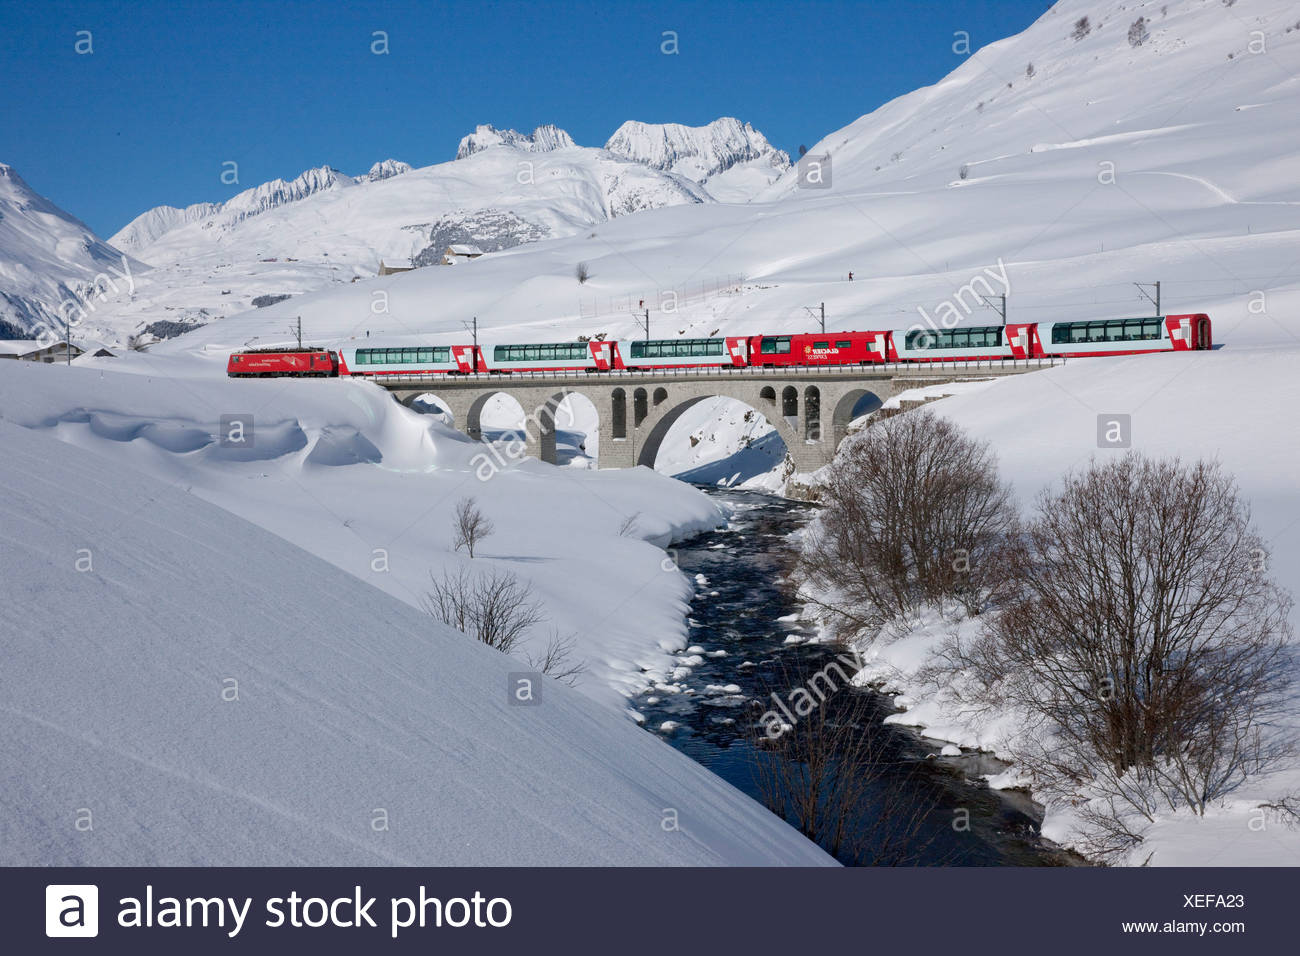 Switzerland Europe snow winter railway train railroad bridge canton UR Uri Ursenental Hospental Andermatt Glacier express brook - Stock Image